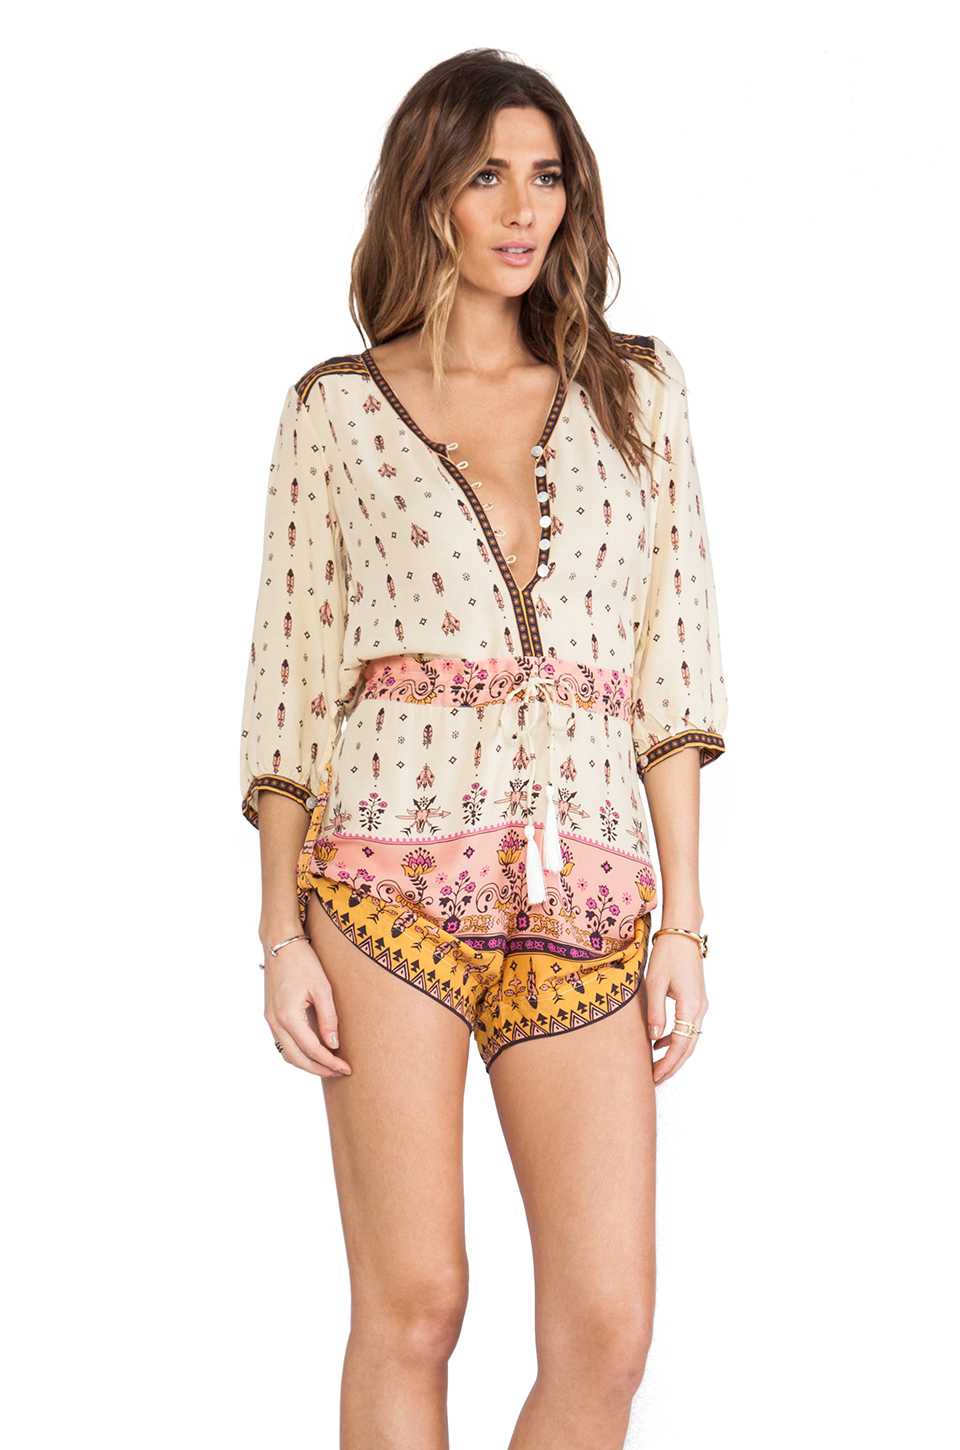 Spell & The Gypsy Collective Desert Wanderer Playsuit in High Moon | REVOLVE